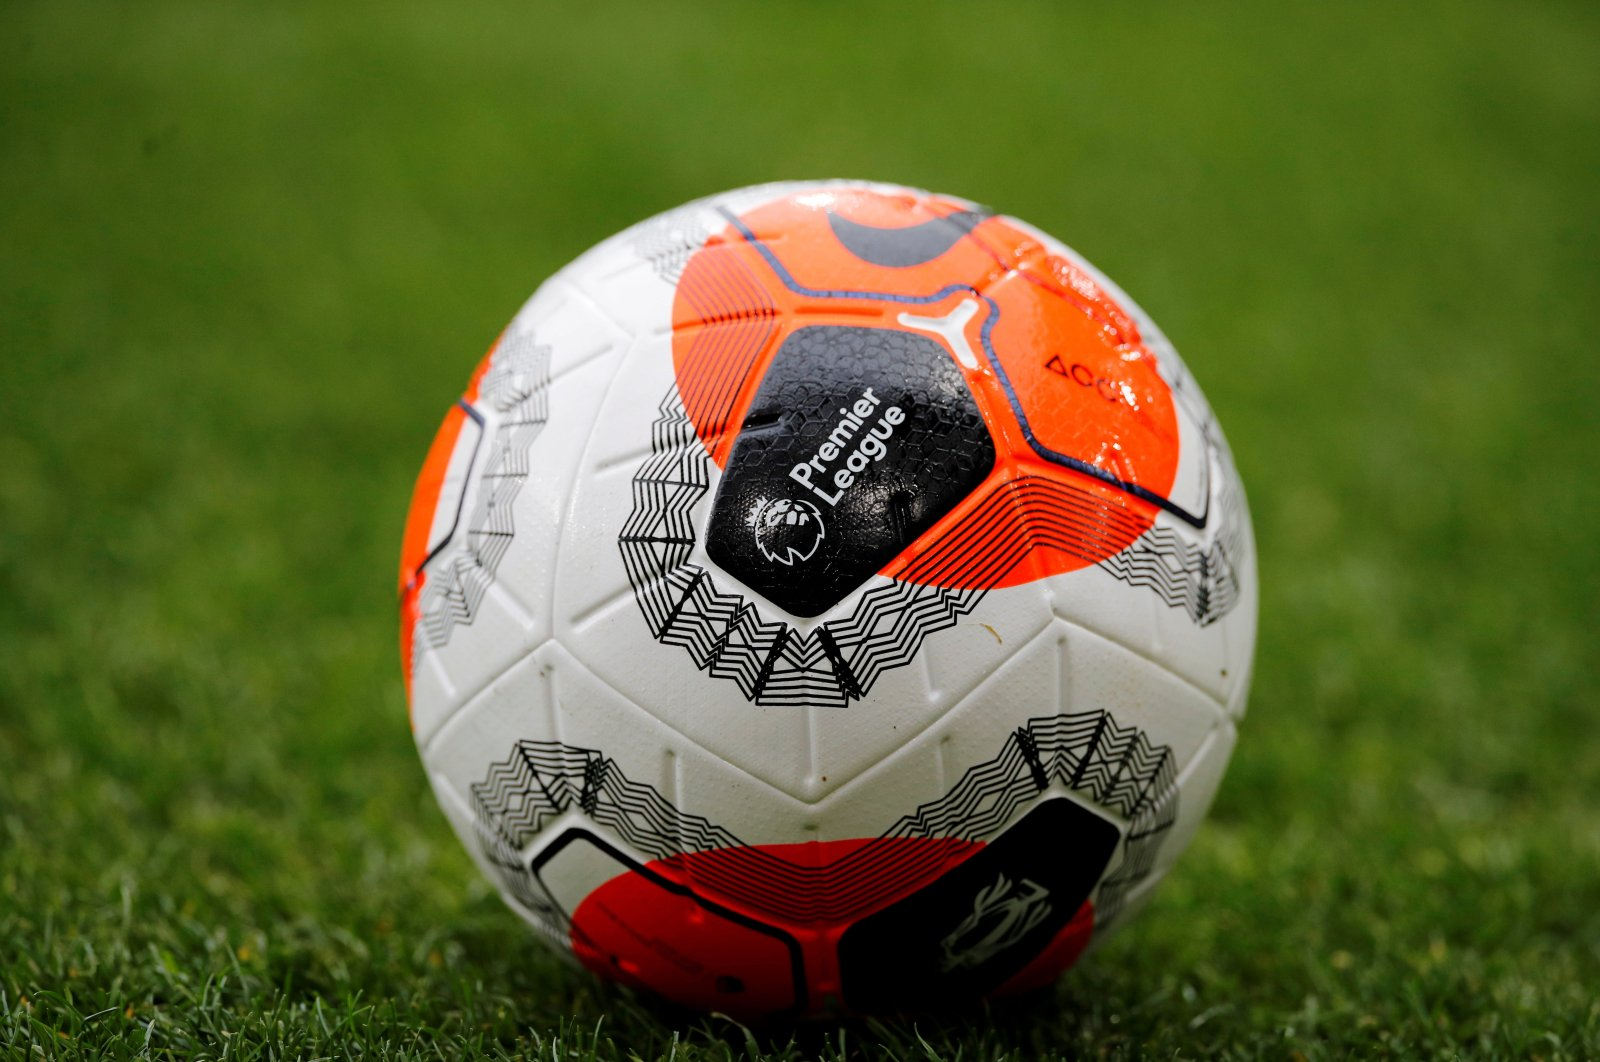 General view of the Premier League logo on a match ball before a match, in Burnley, Britain, Feb. 22, 2020. (REUTERS Photo)